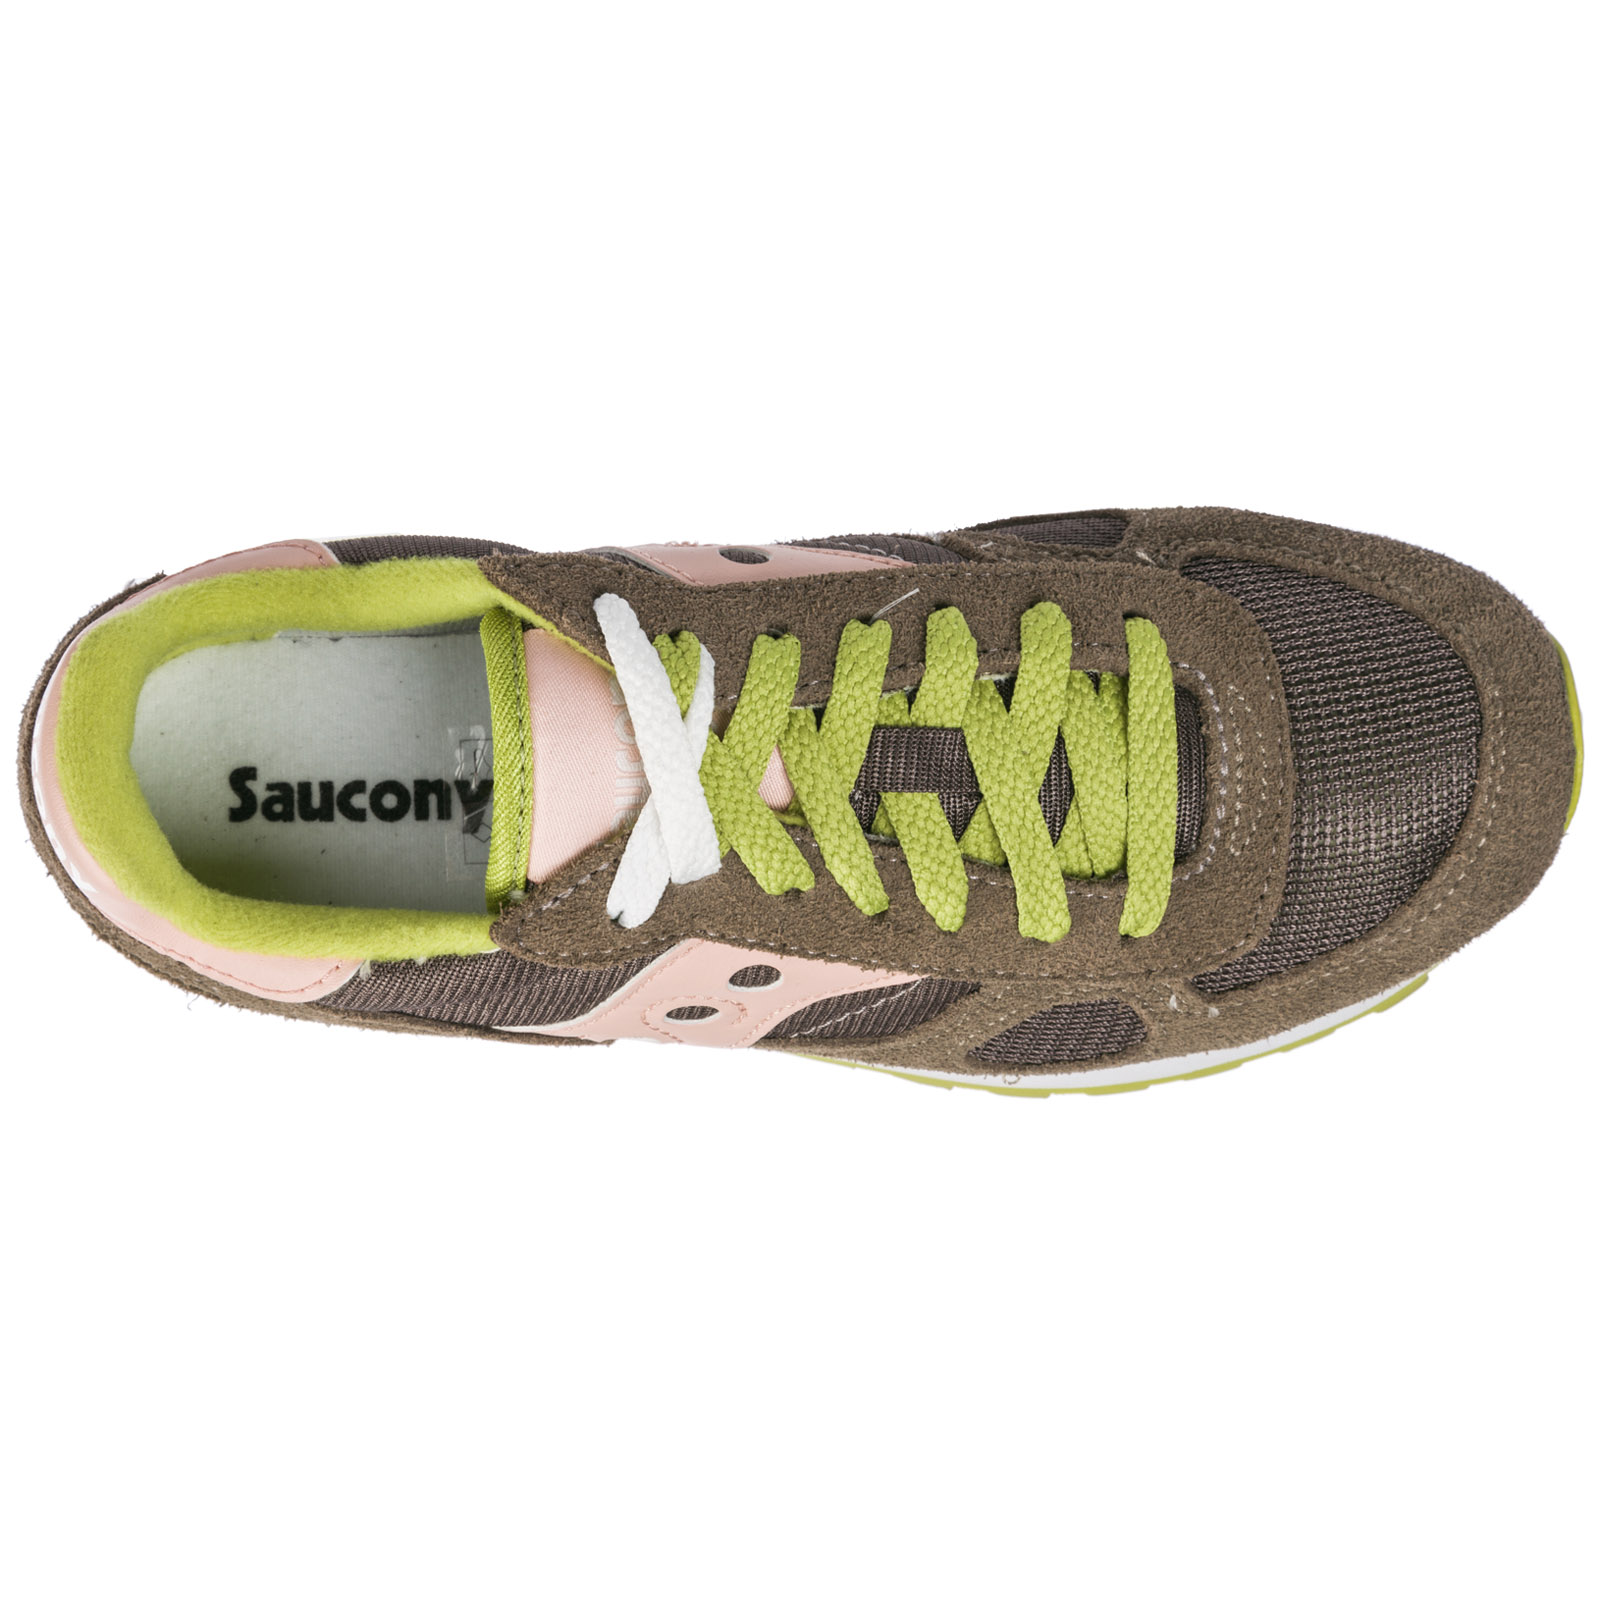 Sneakers Saucony shadow 1108/672 rose